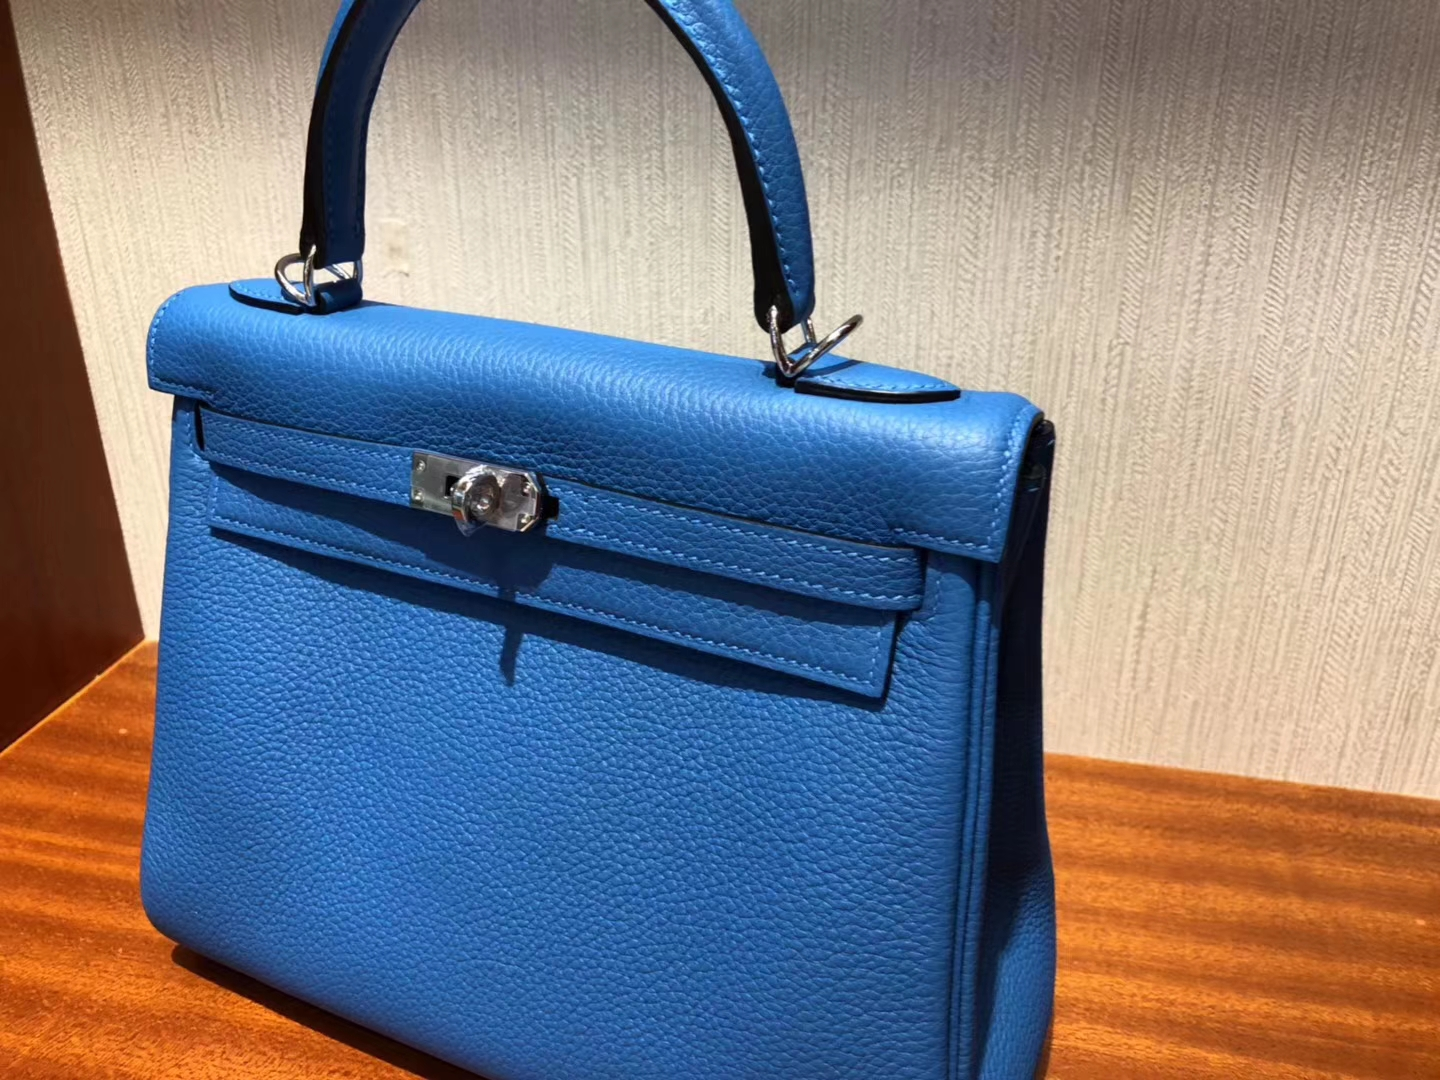 Discount Hermes Togo Calf Leather Kelly Bag25CM in B3 Blue Zanzibar Silver Hardware